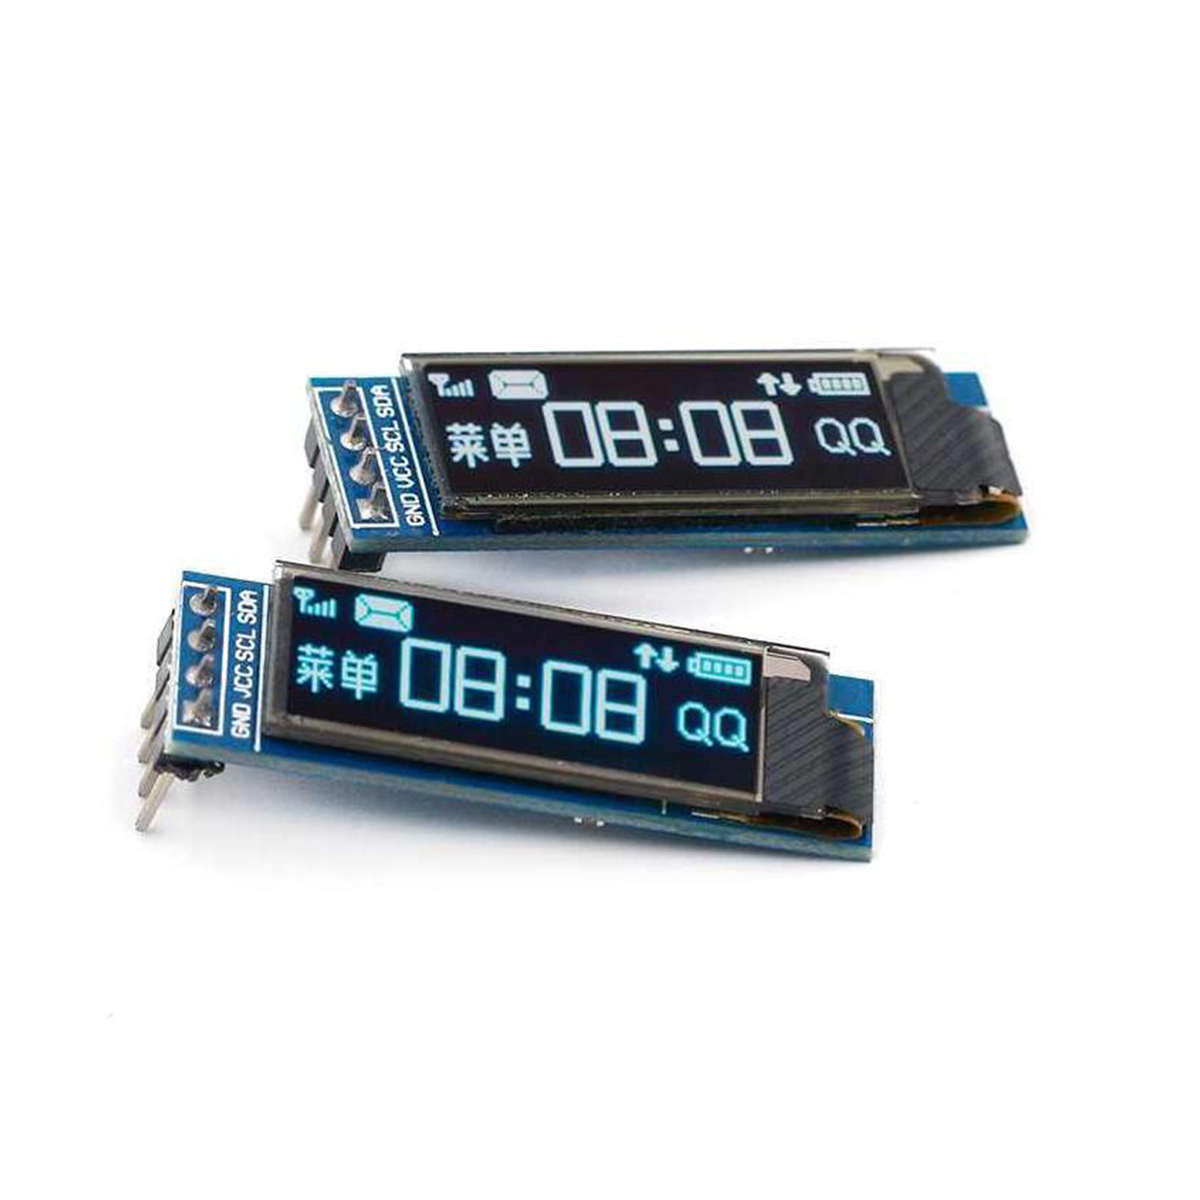 0.91 inch <font><b>OLED</b></font> <font><b>display</b></font> module white/blue <font><b>OLED</b></font> 128X32 LCD LED <font><b>Display</b></font> SSD1306 12864 0.91 IIC <font><b>i2C</b></font> Communicate for ardunio image